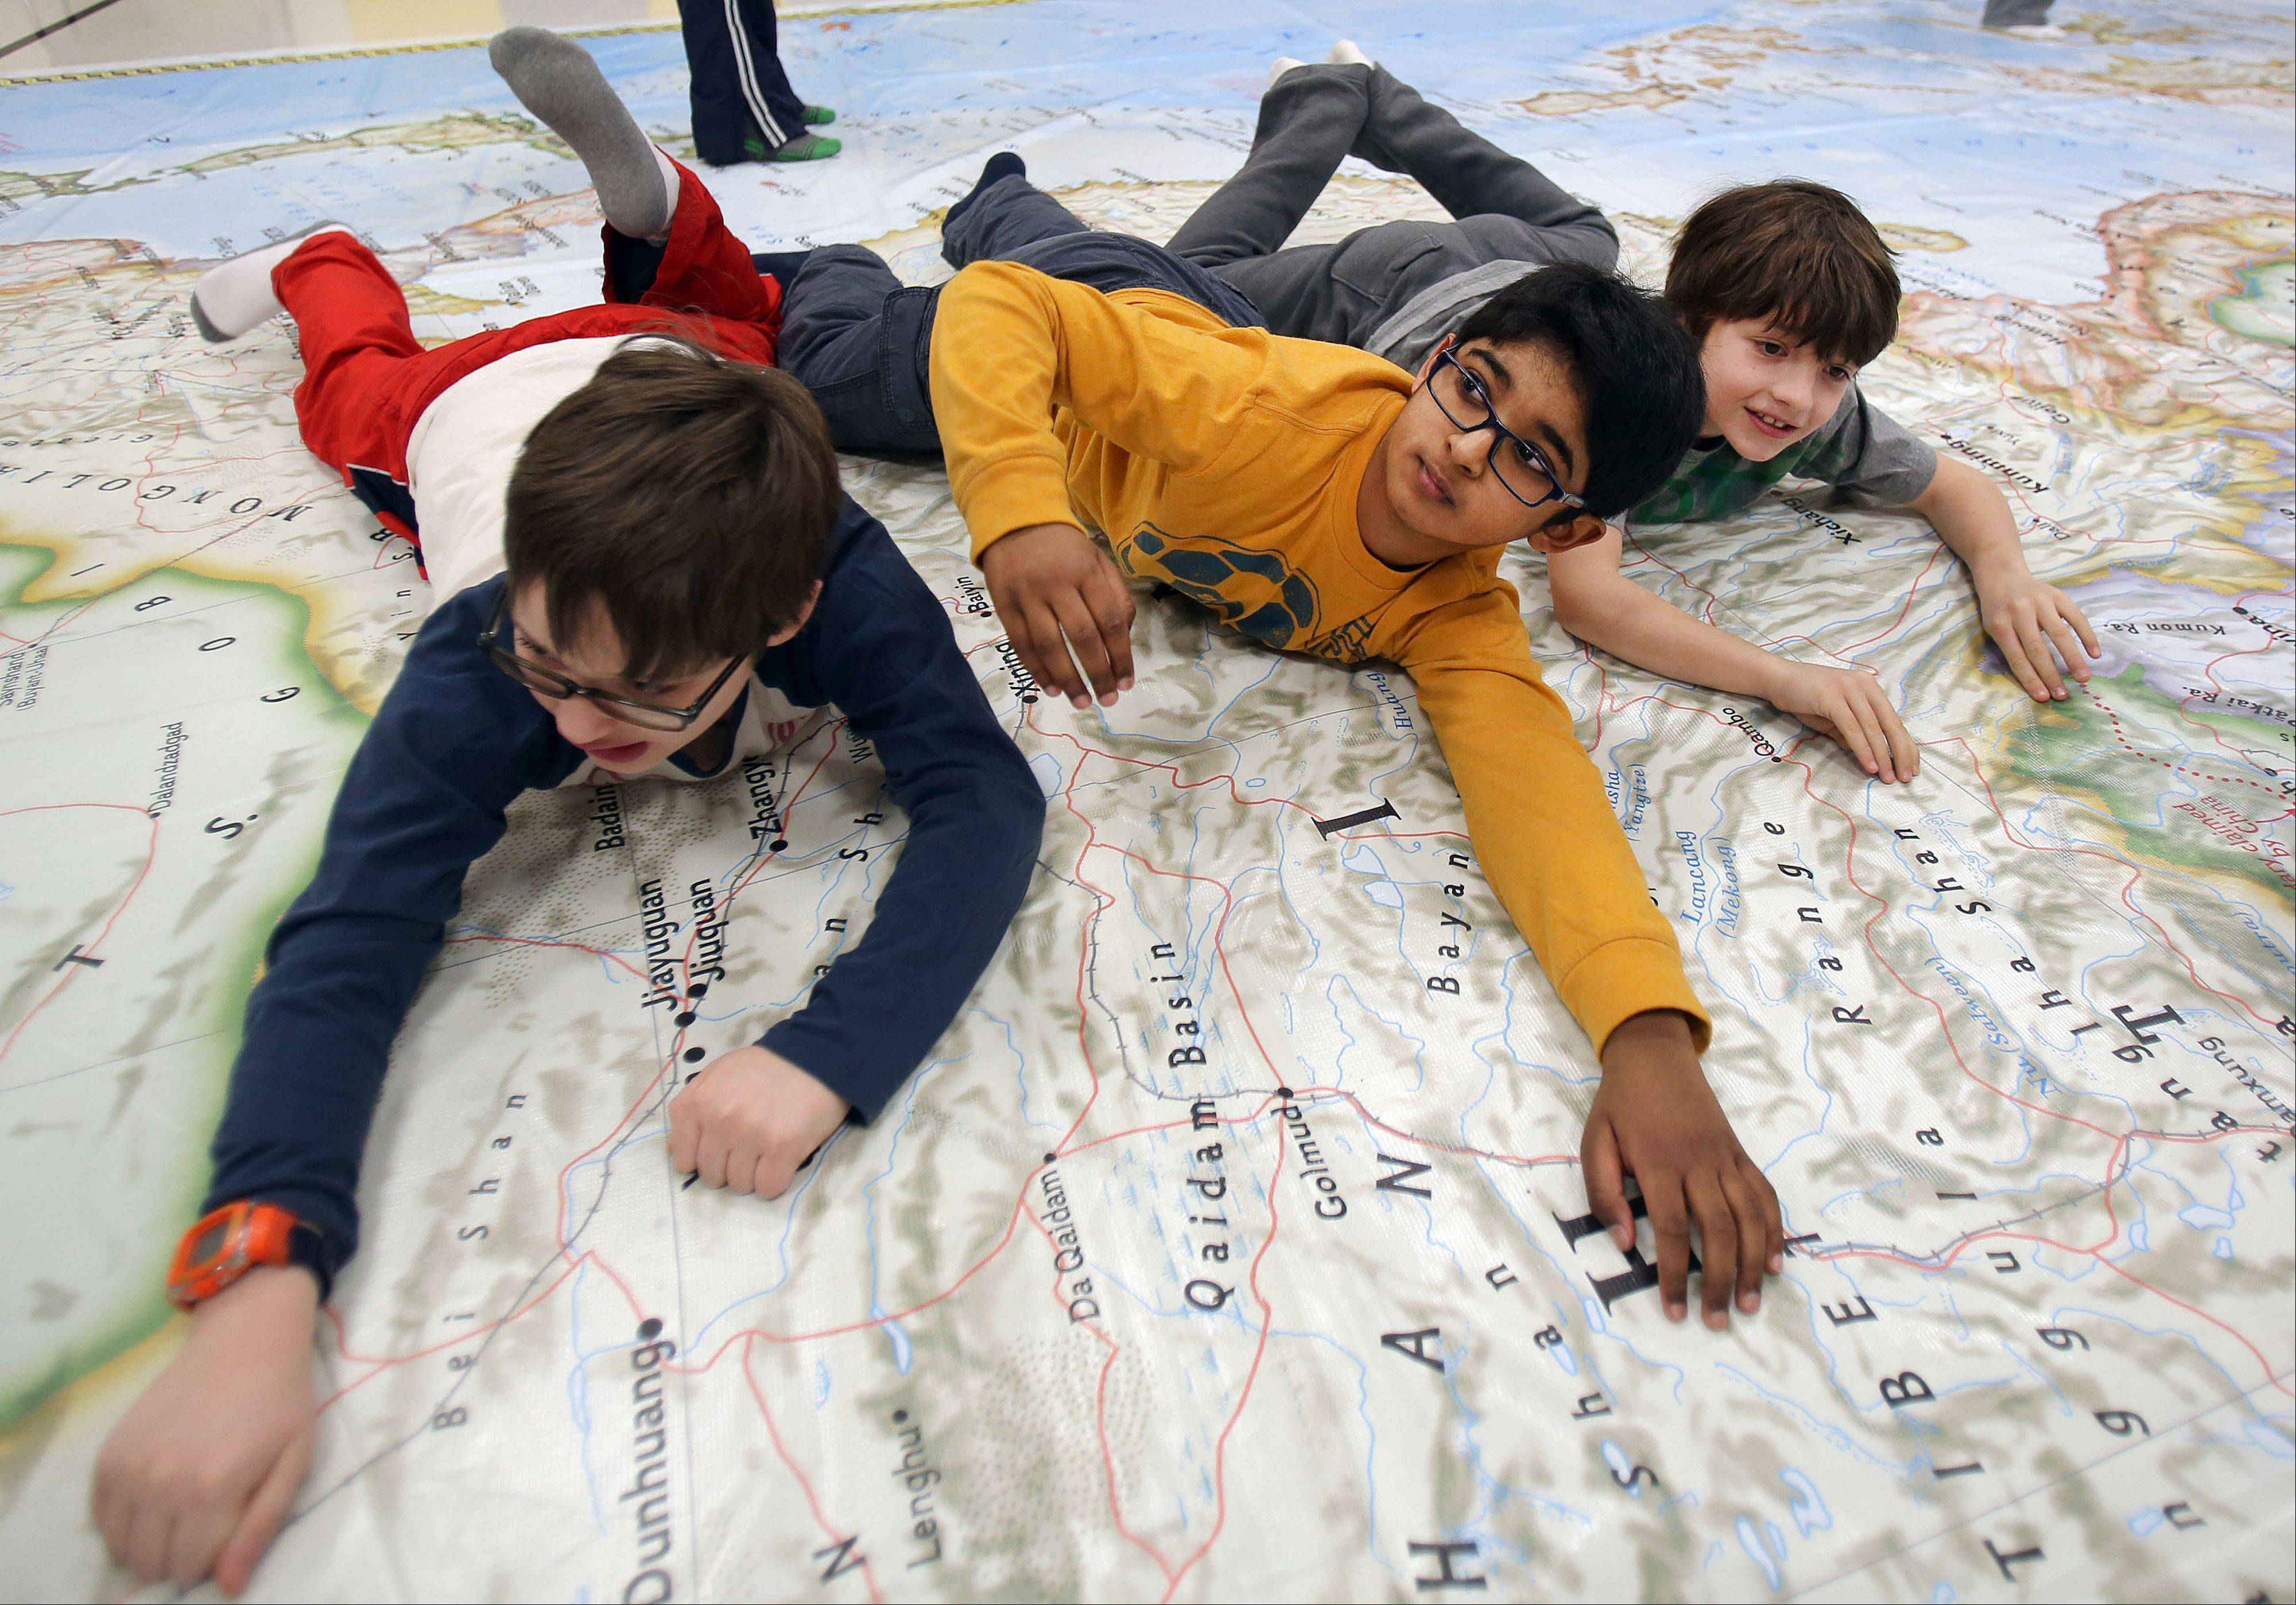 Steve Lundy/slundy@dailyherald.comThird graders Mario Babbo, left, Narayan Manthena, and Max Poretto, right, pose for a picture as kids explored a giant 26x35 foot map of Asia at Half Day School in Lincolnshire Friday. The map is from National Geographic's Giant Traveling Maps program and will remain at the school until January 17.